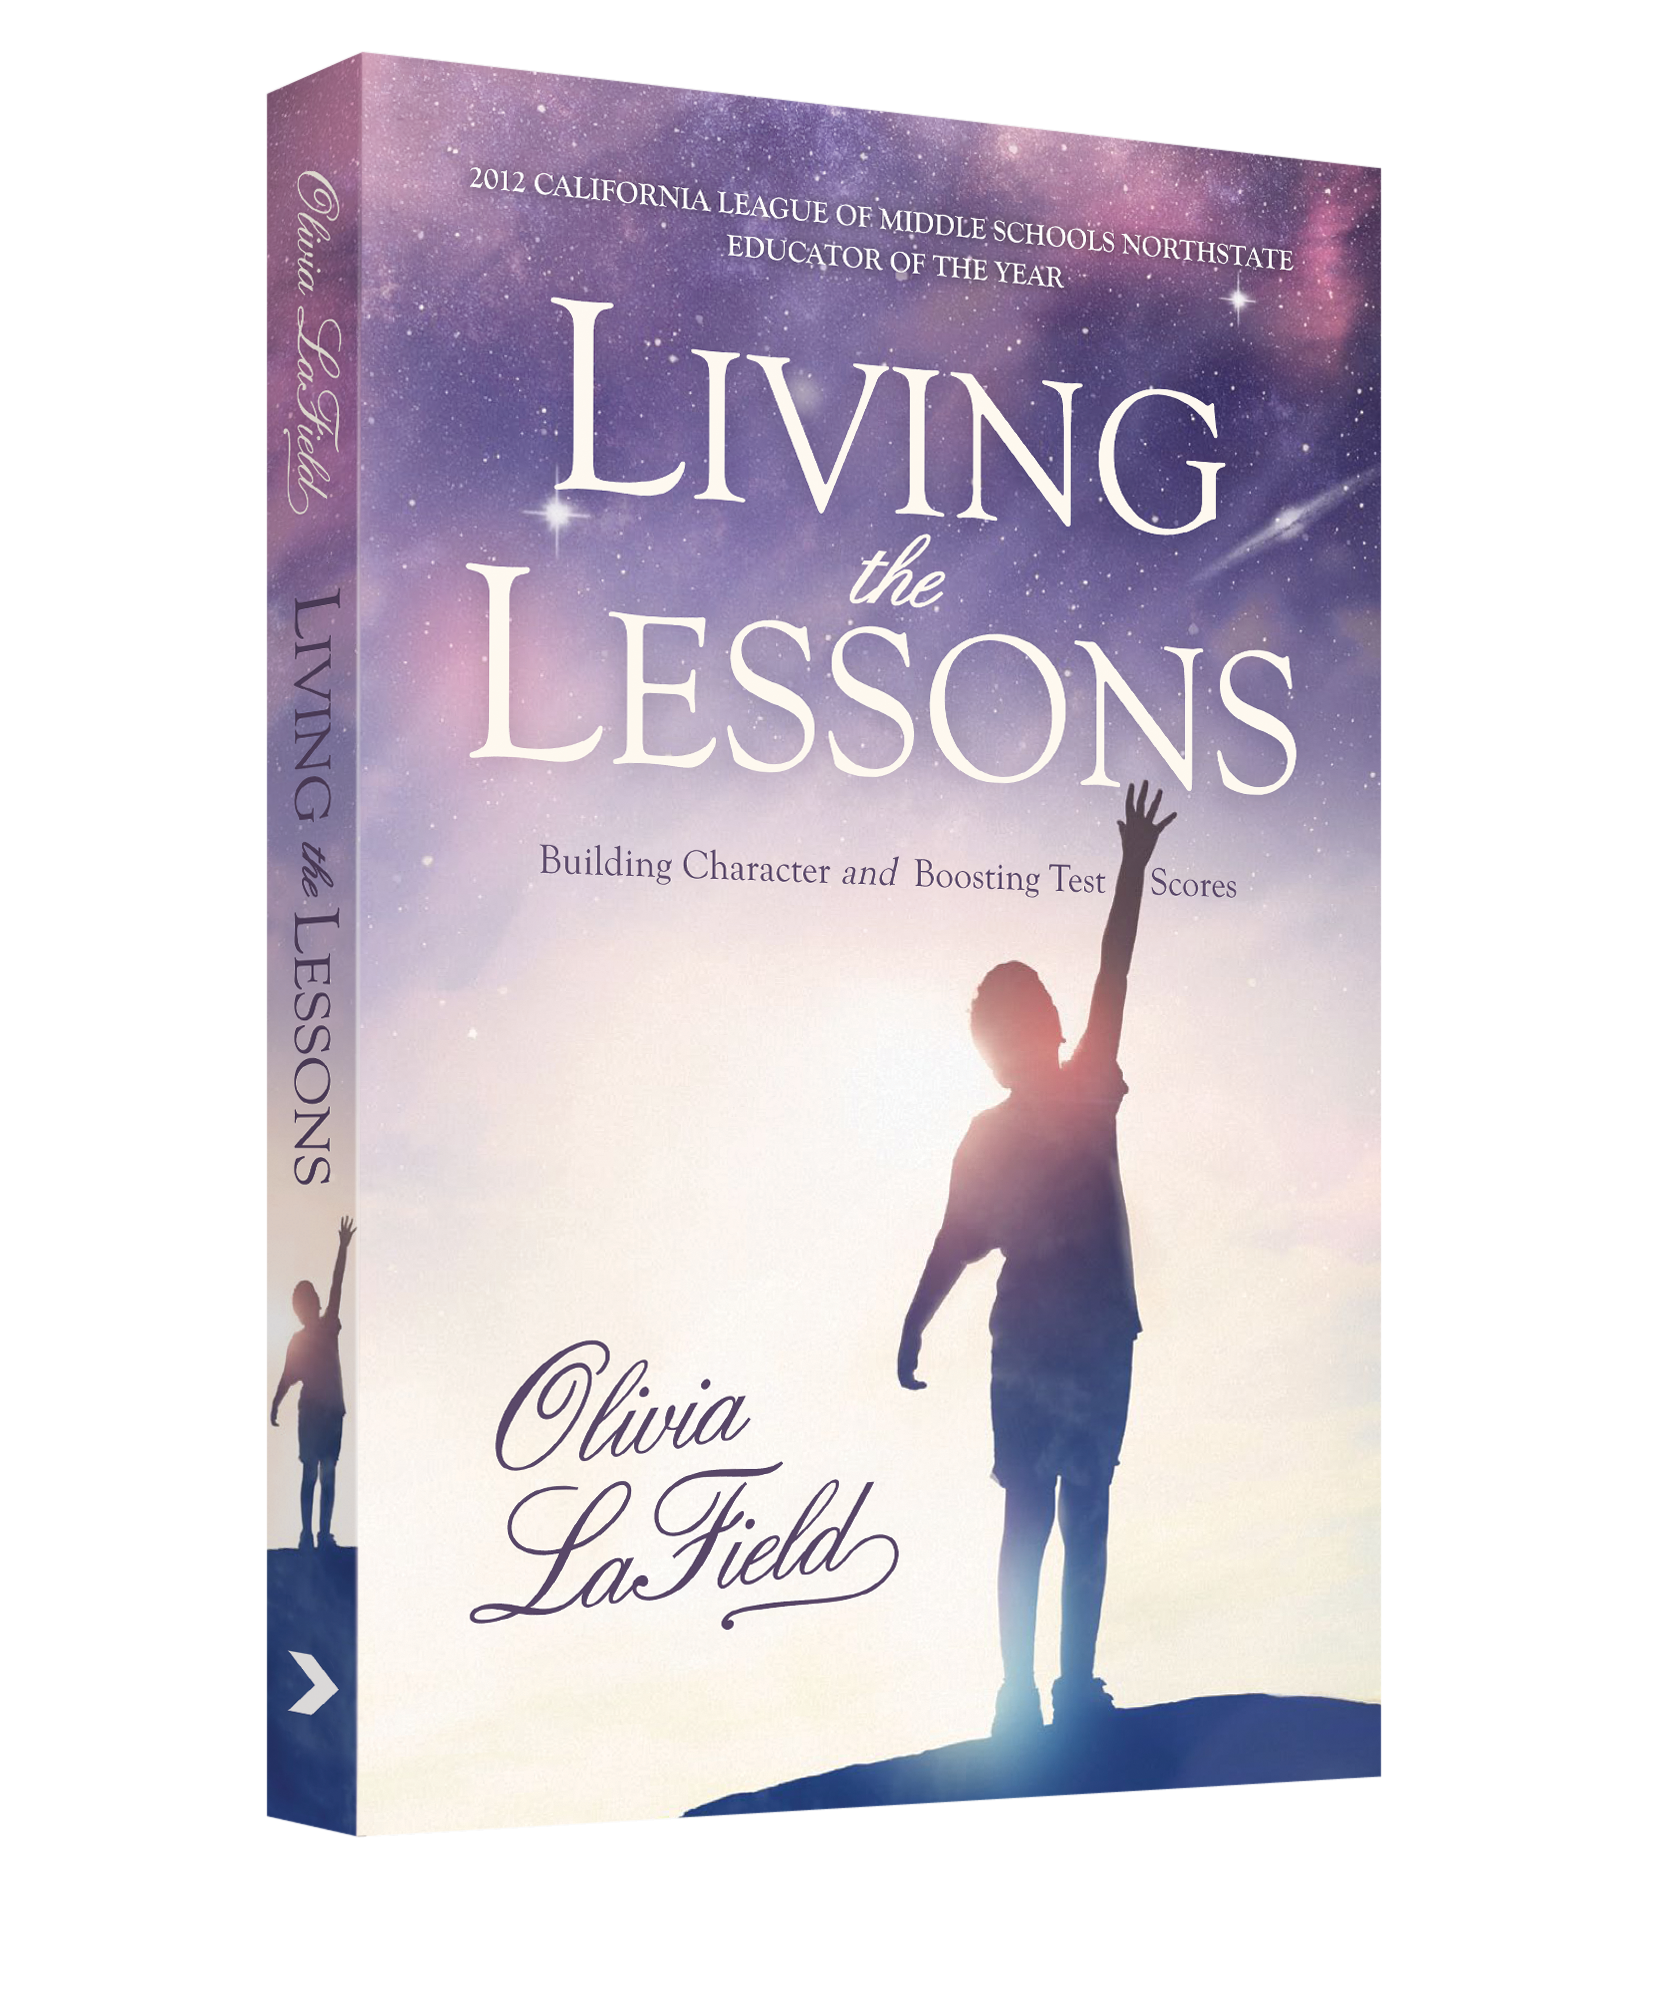 Book Cover Design / Living the Lessons